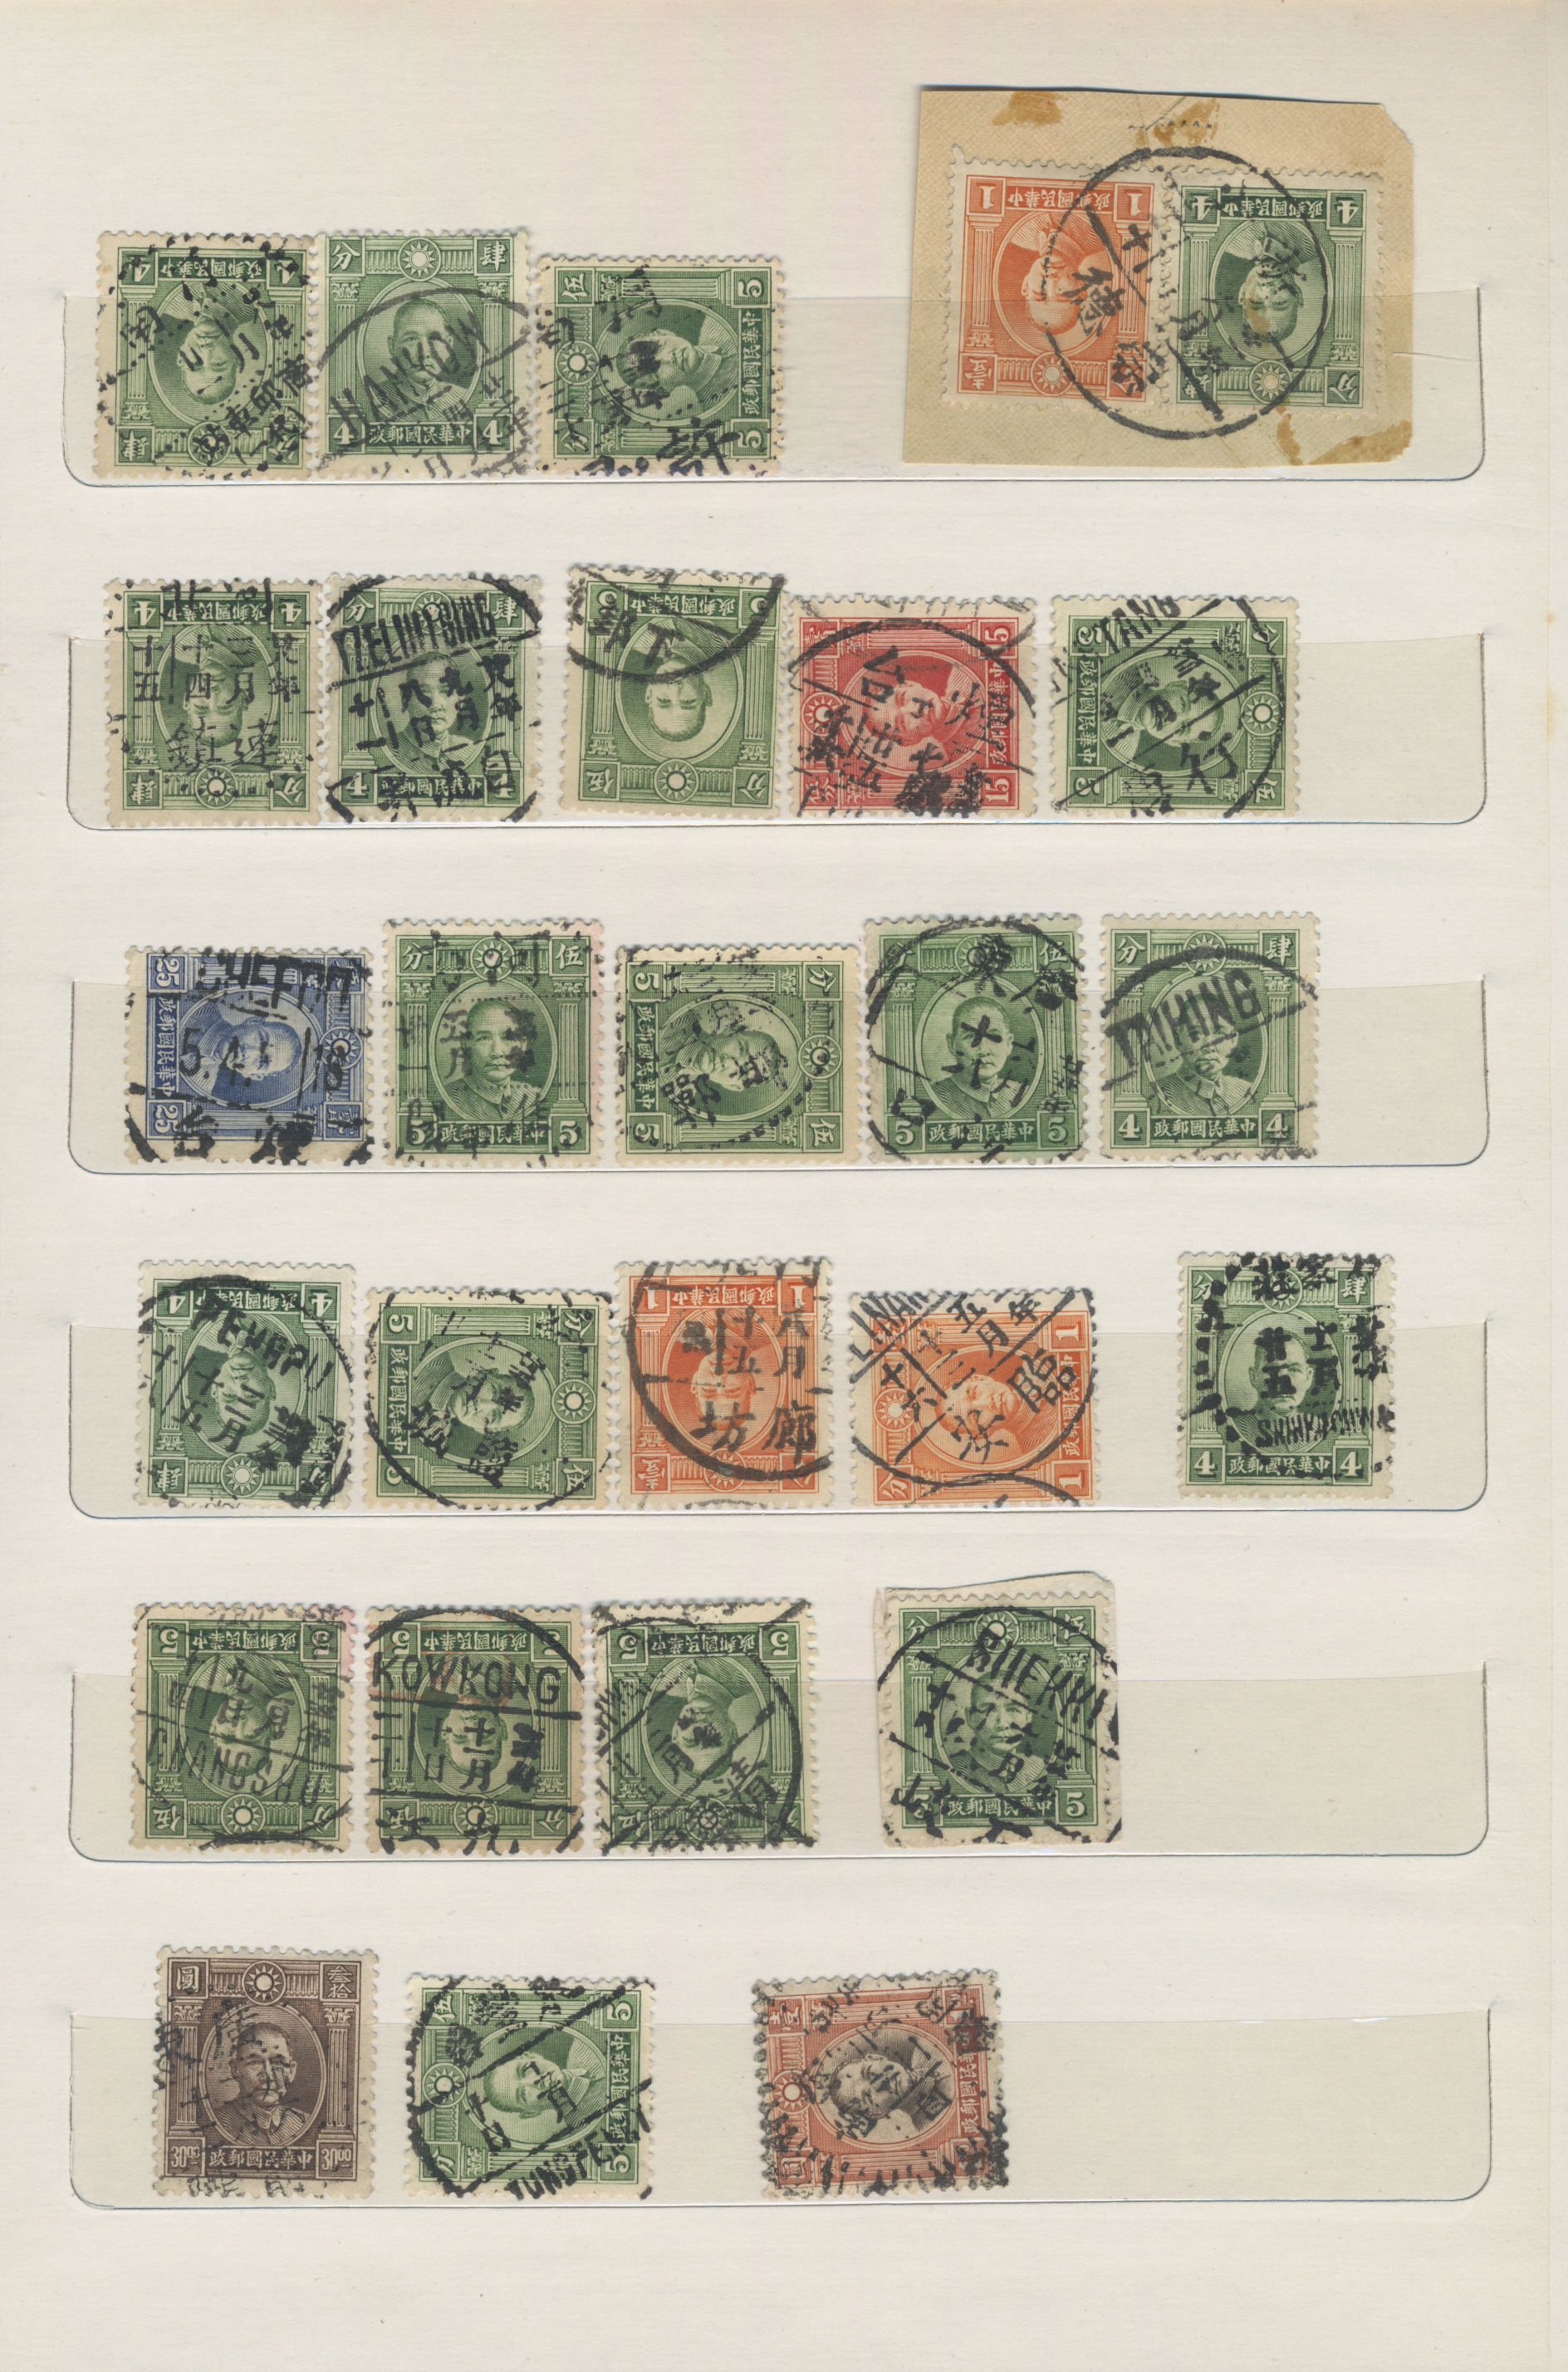 Lot 24473 - China - Fremde Postanstalten / Foreign Offices  -  Auktionshaus Christoph Gärtner GmbH & Co. KG Sale #45Collections Worldwide